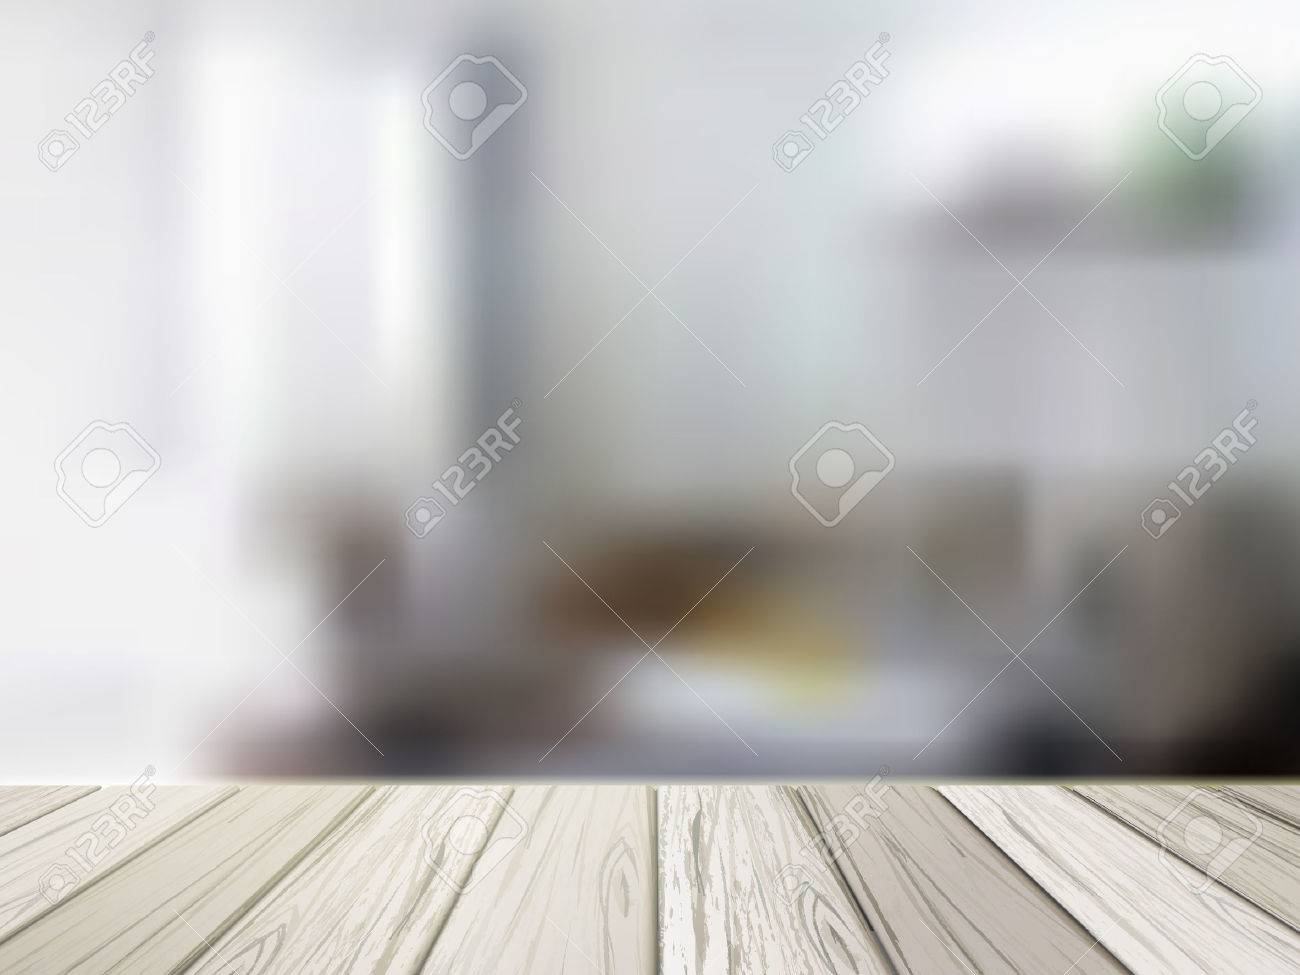 Vector   close up look at wooden table over blurred kitchen scene. Close up Look At Wooden Table Over Blurred Kitchen Scene Royalty